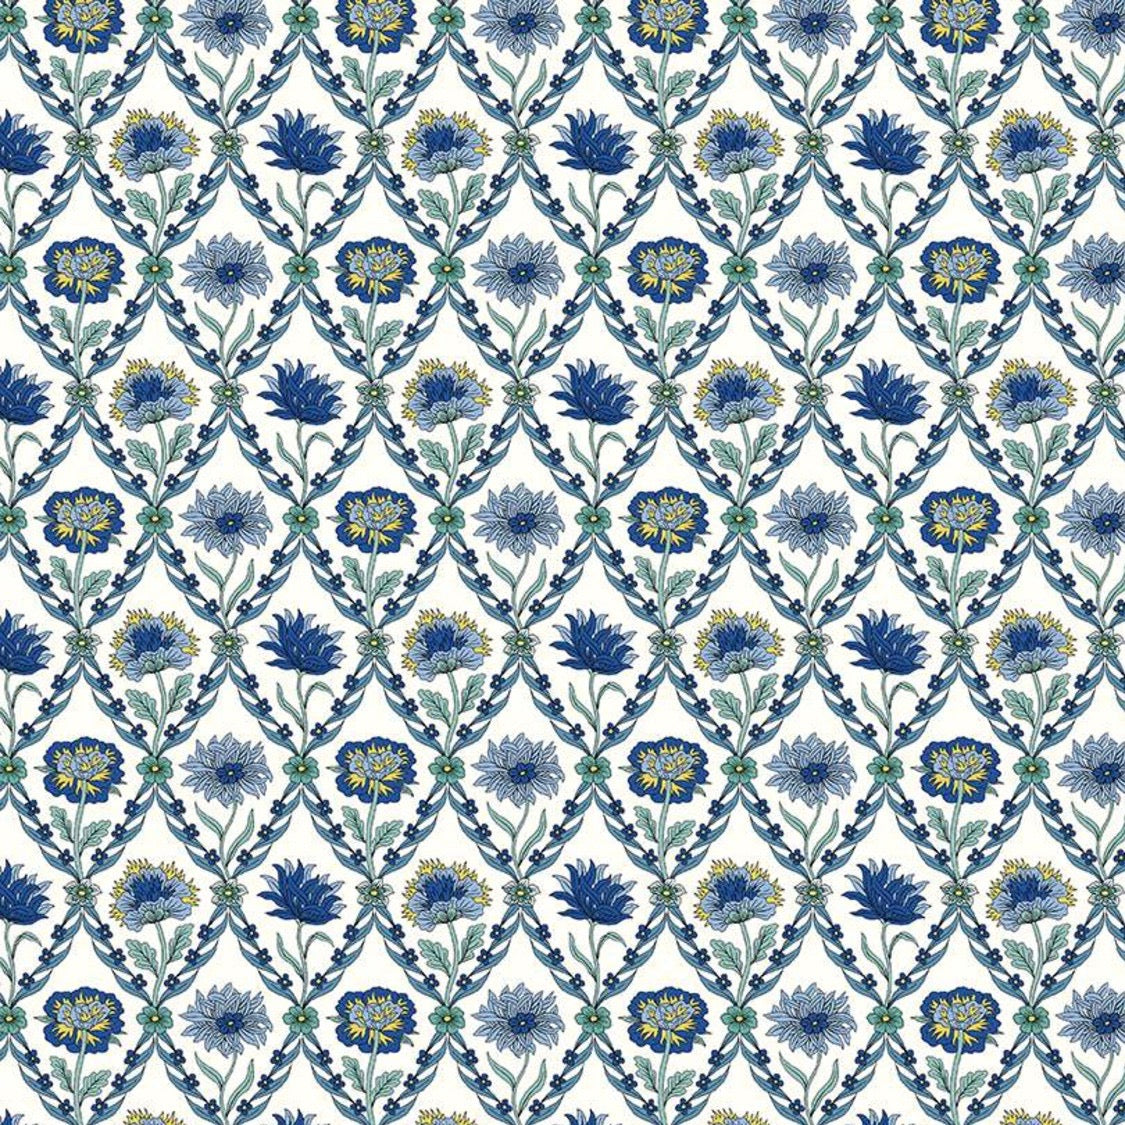 Liberty of London Summer House Kew Trellis Blue quilt fabric with blue flowers in a diamond grid pattern on a white background